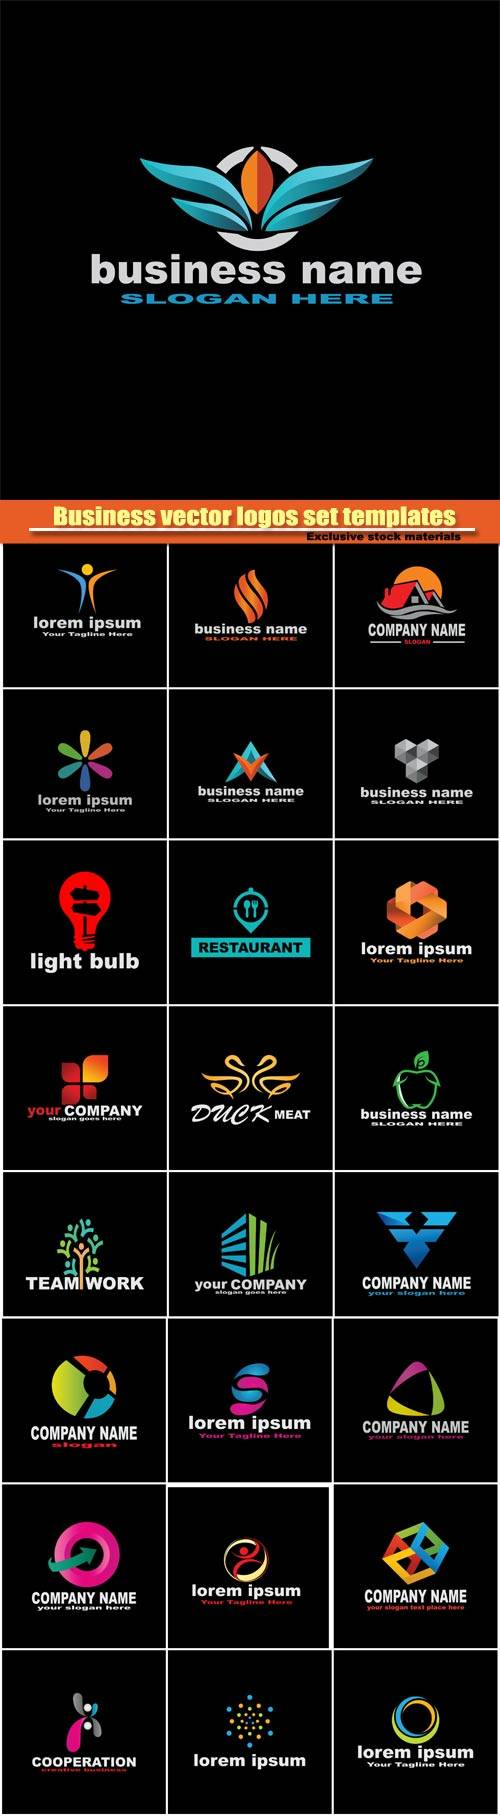 Business vector logos set templates